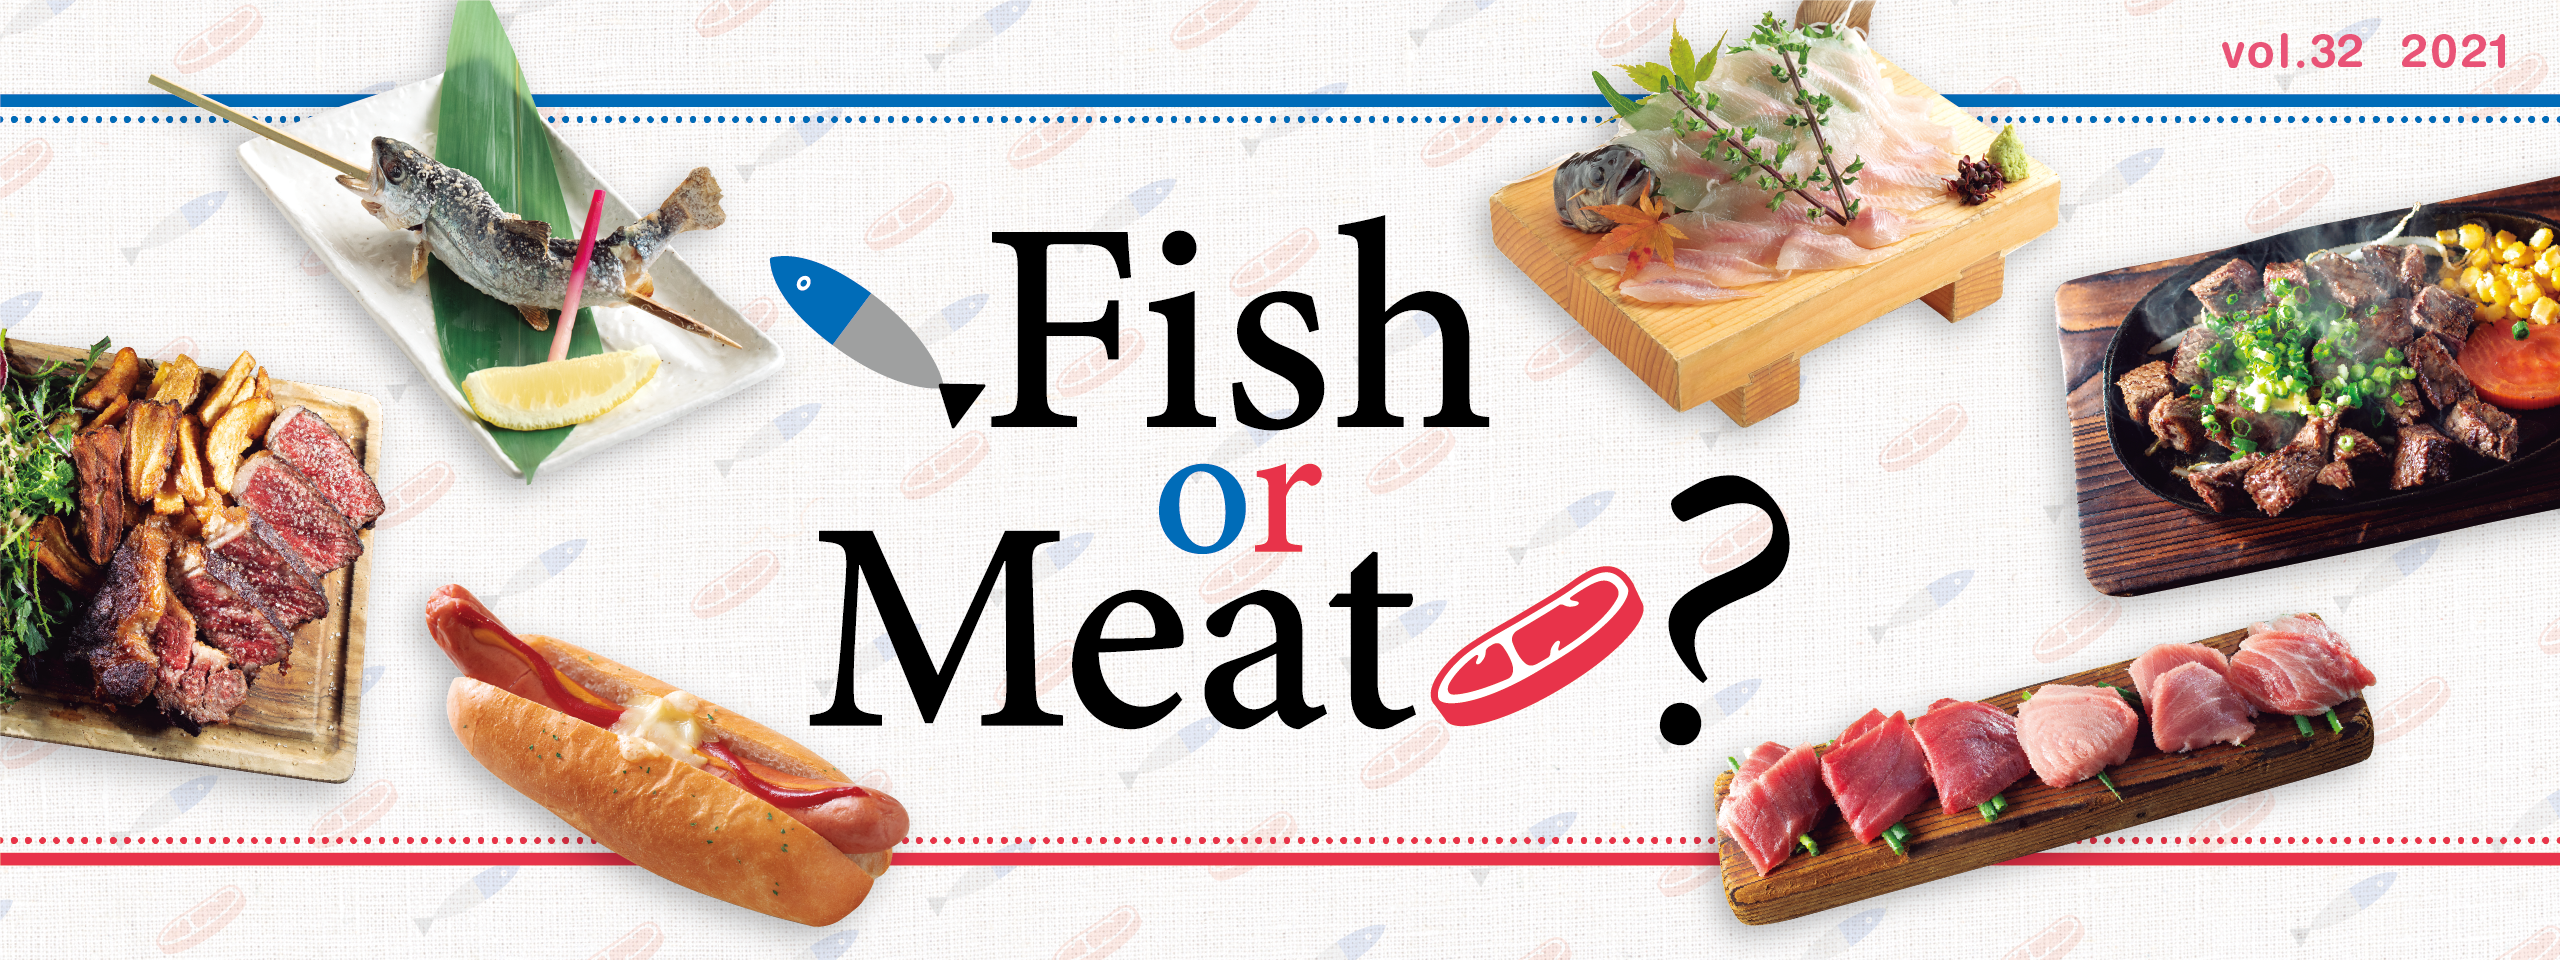 Fish or Meat?